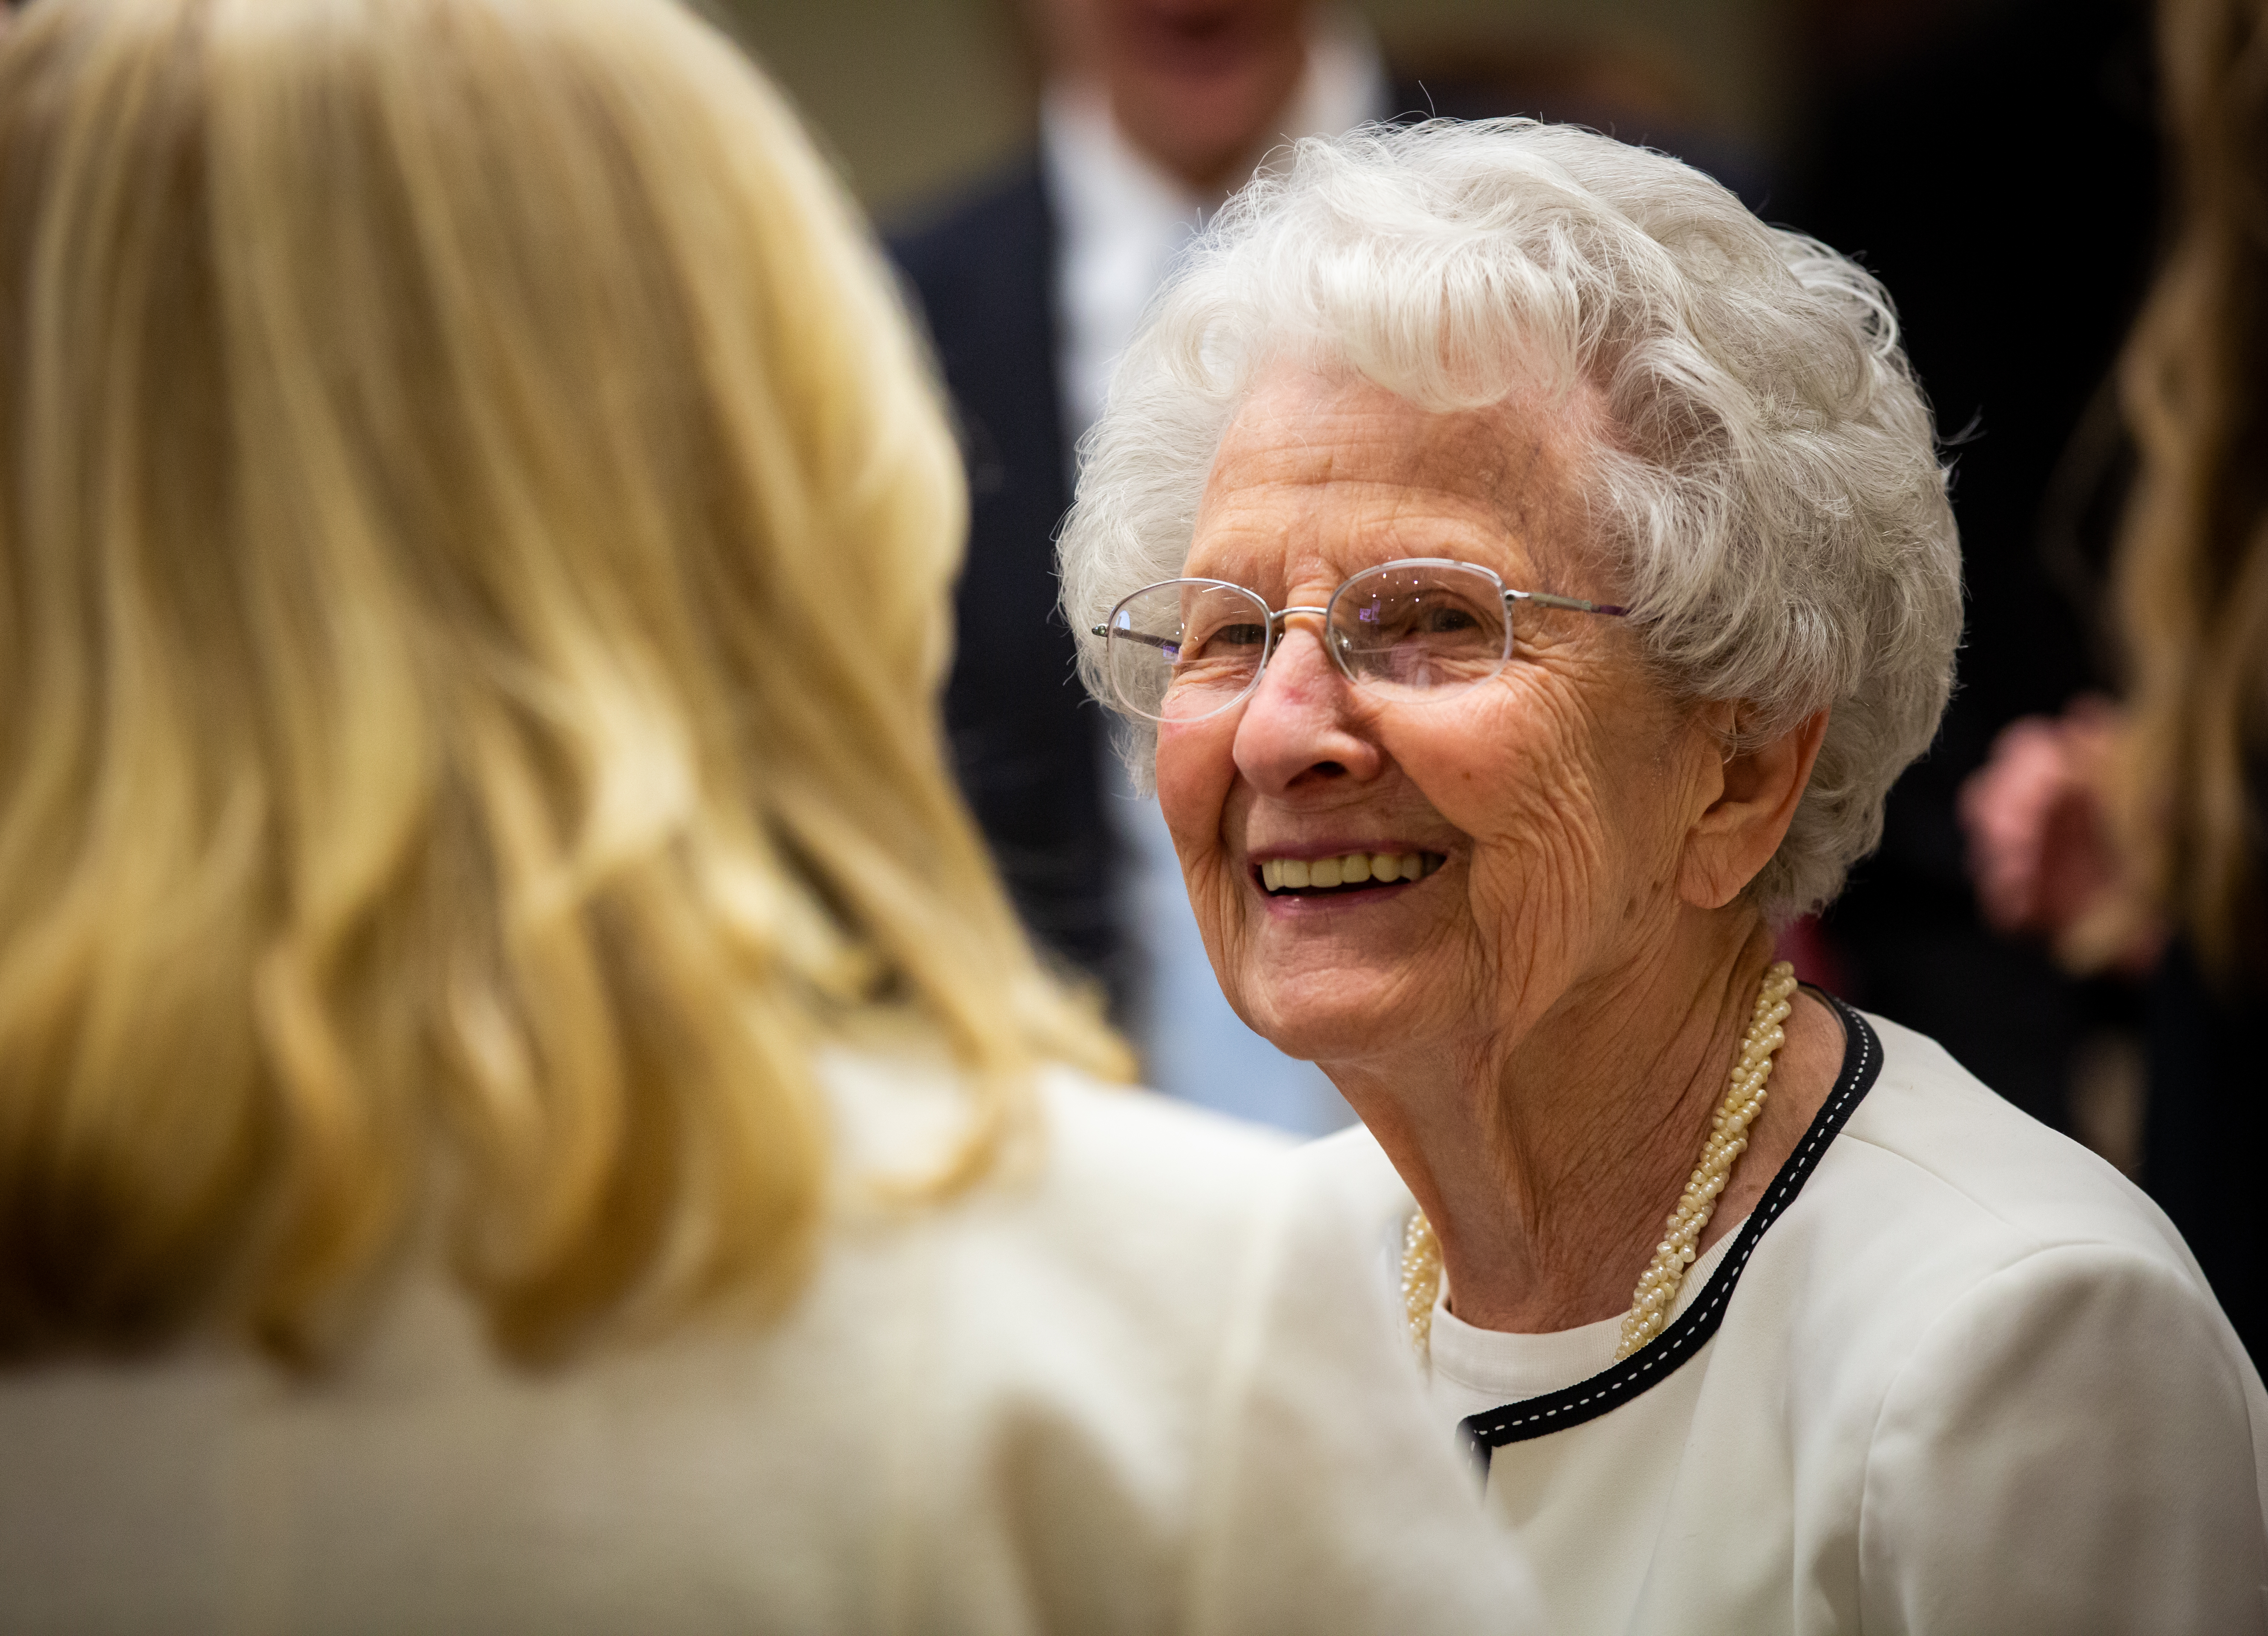 Members of the Hinckley family attend a dinner hosted by the Marjorie Pay Hinckley Endowed Chair in Social Work and the Social Sciences prior to the 15th Annual Marjorie Pay Hinckley Lecture on Feb. 7, 2019 on the BYU Provo, Utah campus.